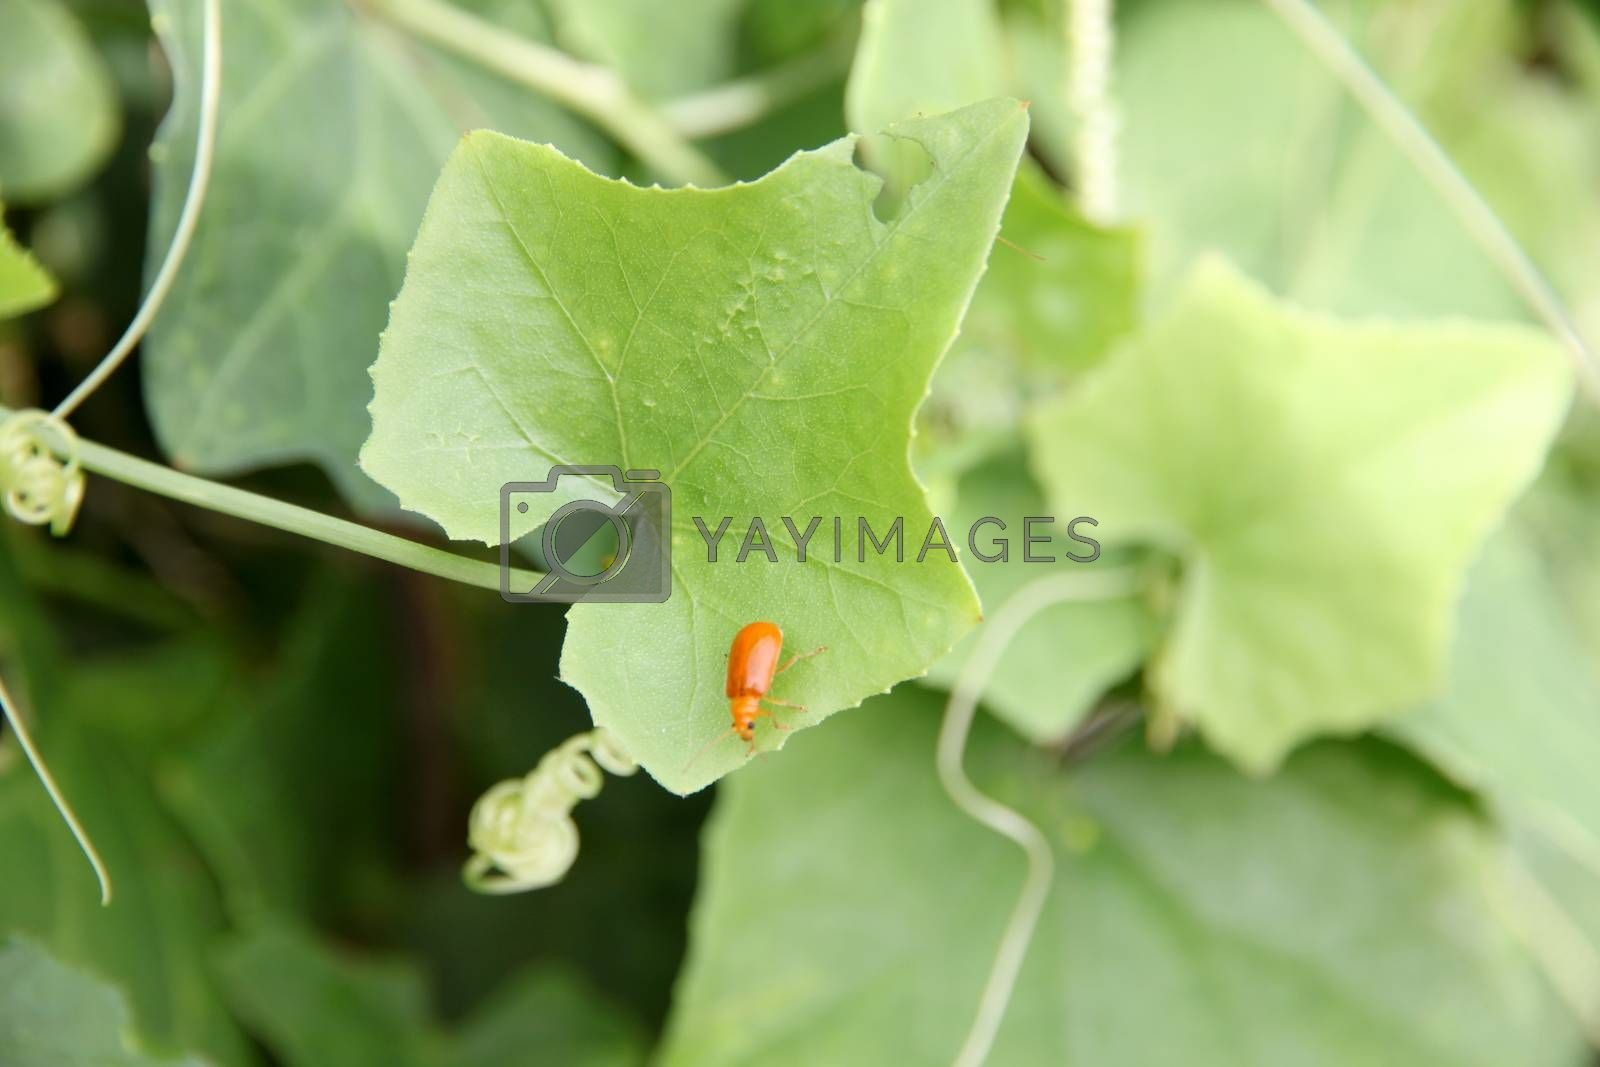 Closeup Small red insect perched on green leaves.